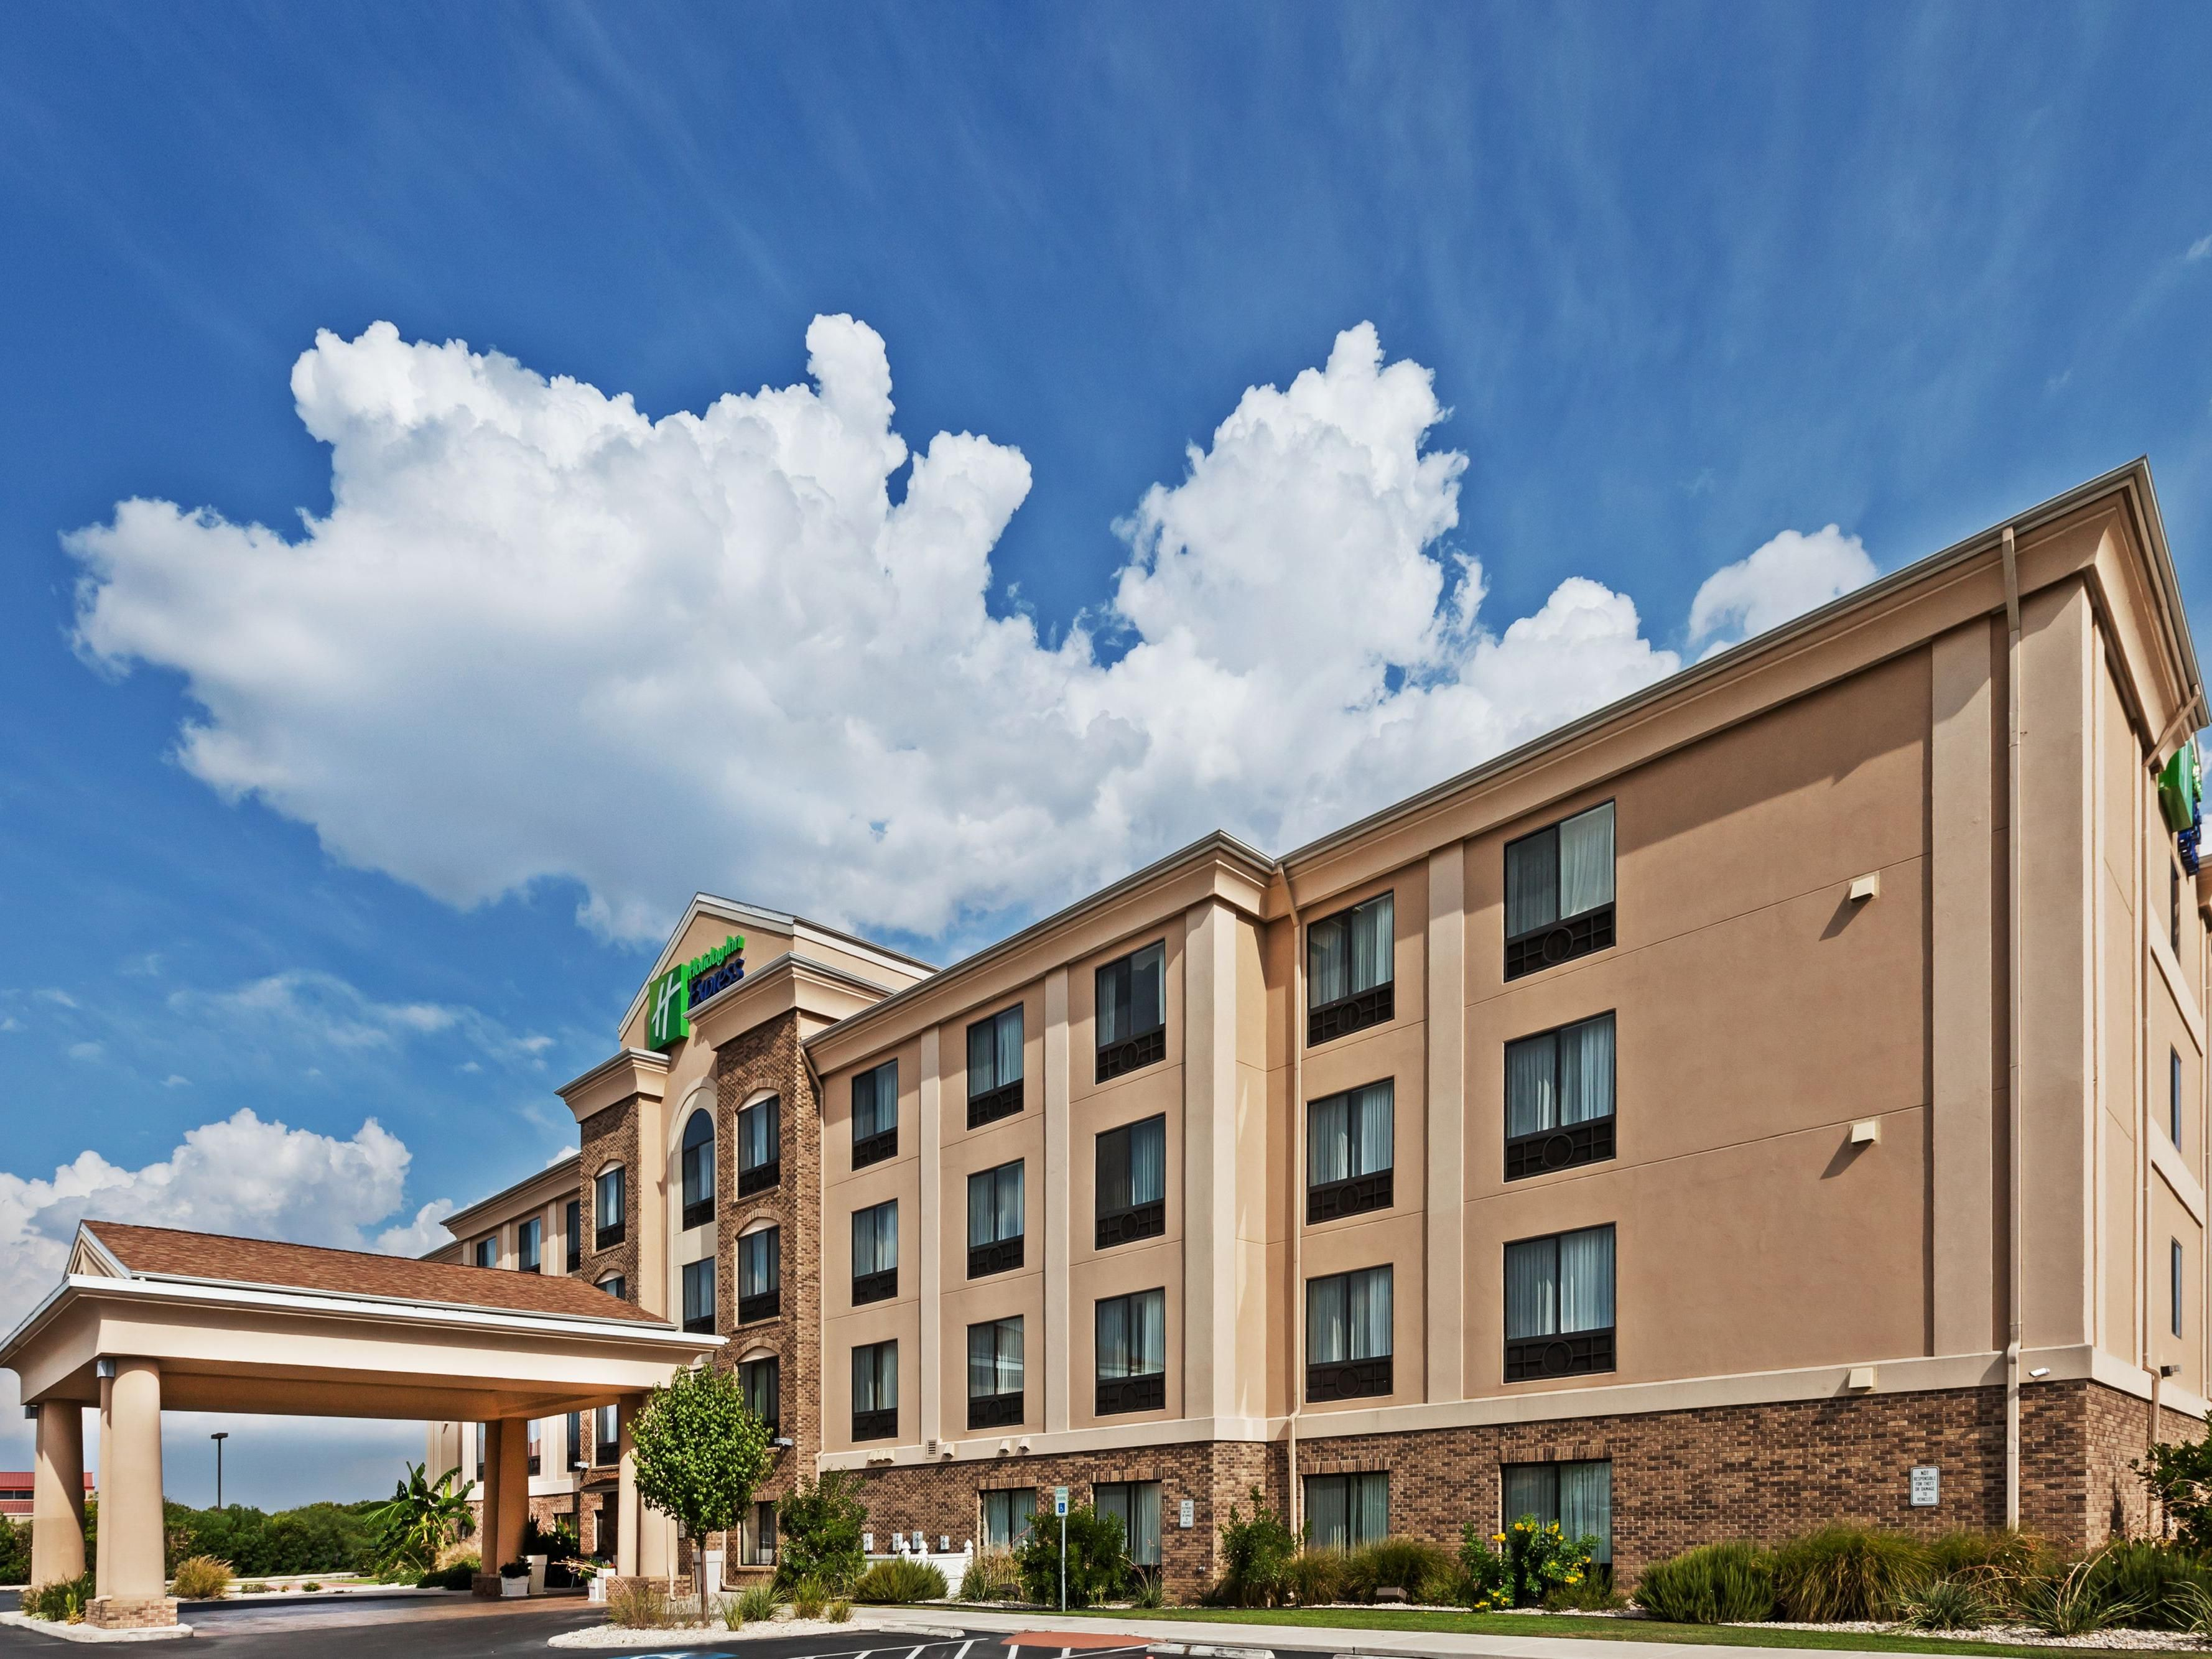 Welcome to the Holiday Inn Express Selma